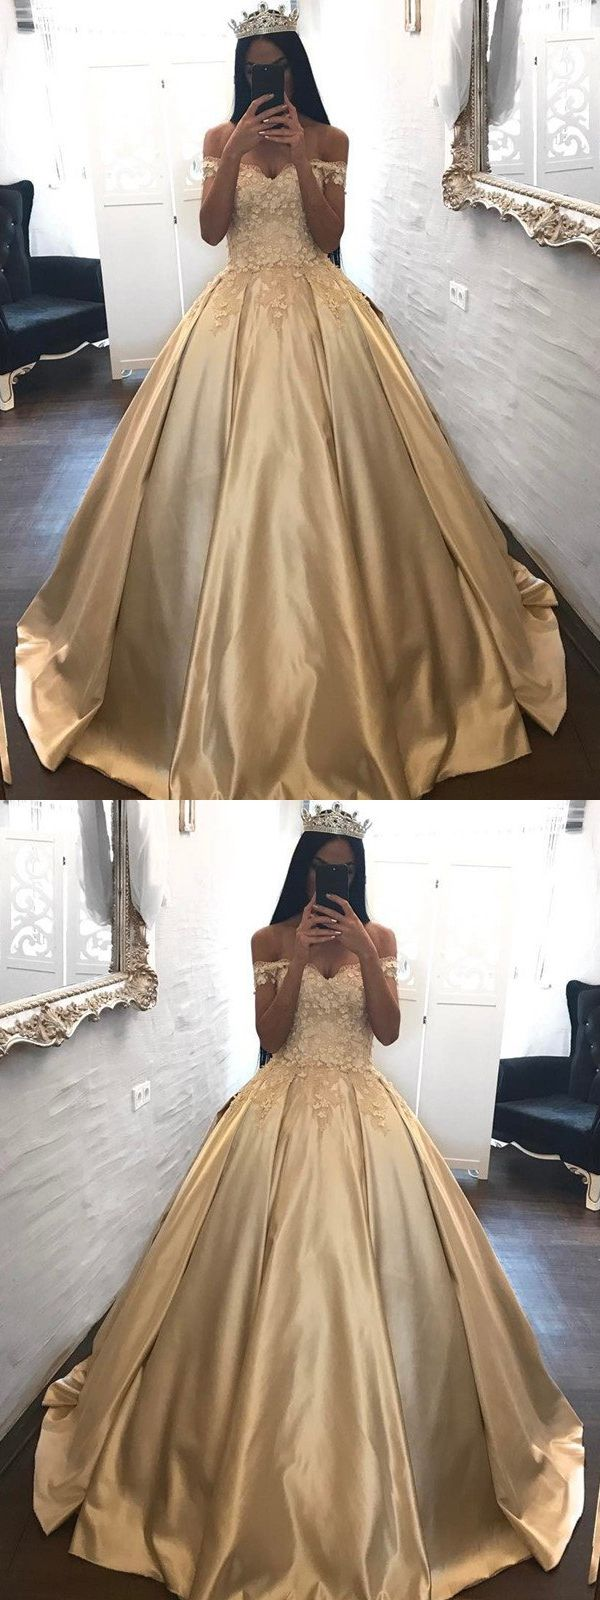 Ball gown prom dresses offtheshoulder appliques satin prom dress